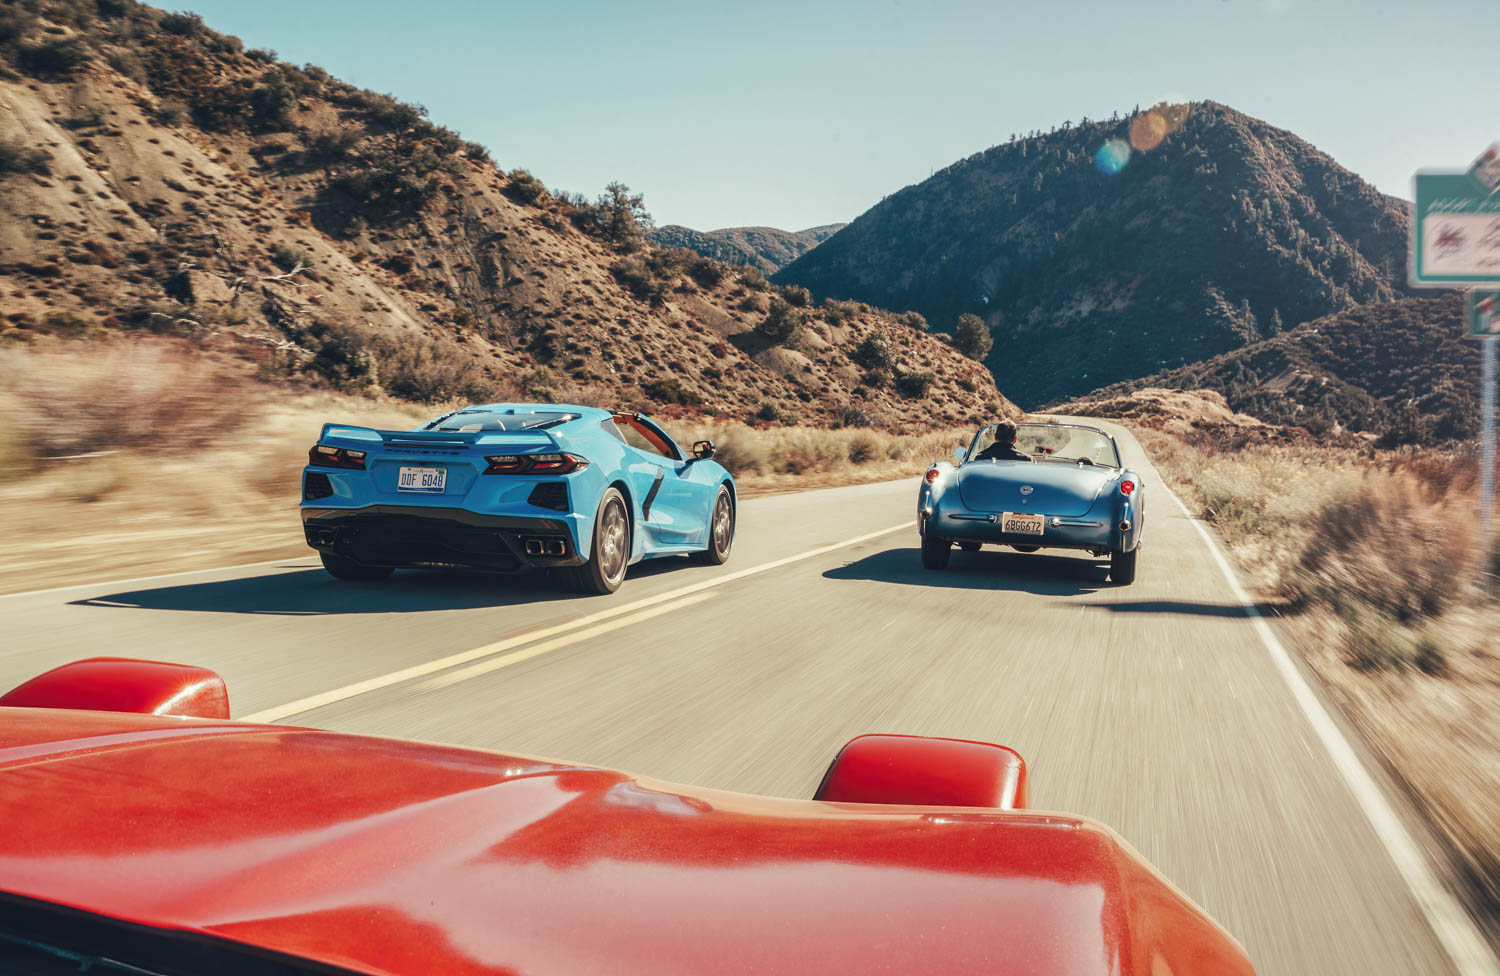 The occasional straights on California's Highway 33 were the perfect places to mash the throttle during our private Corvette club cruise.